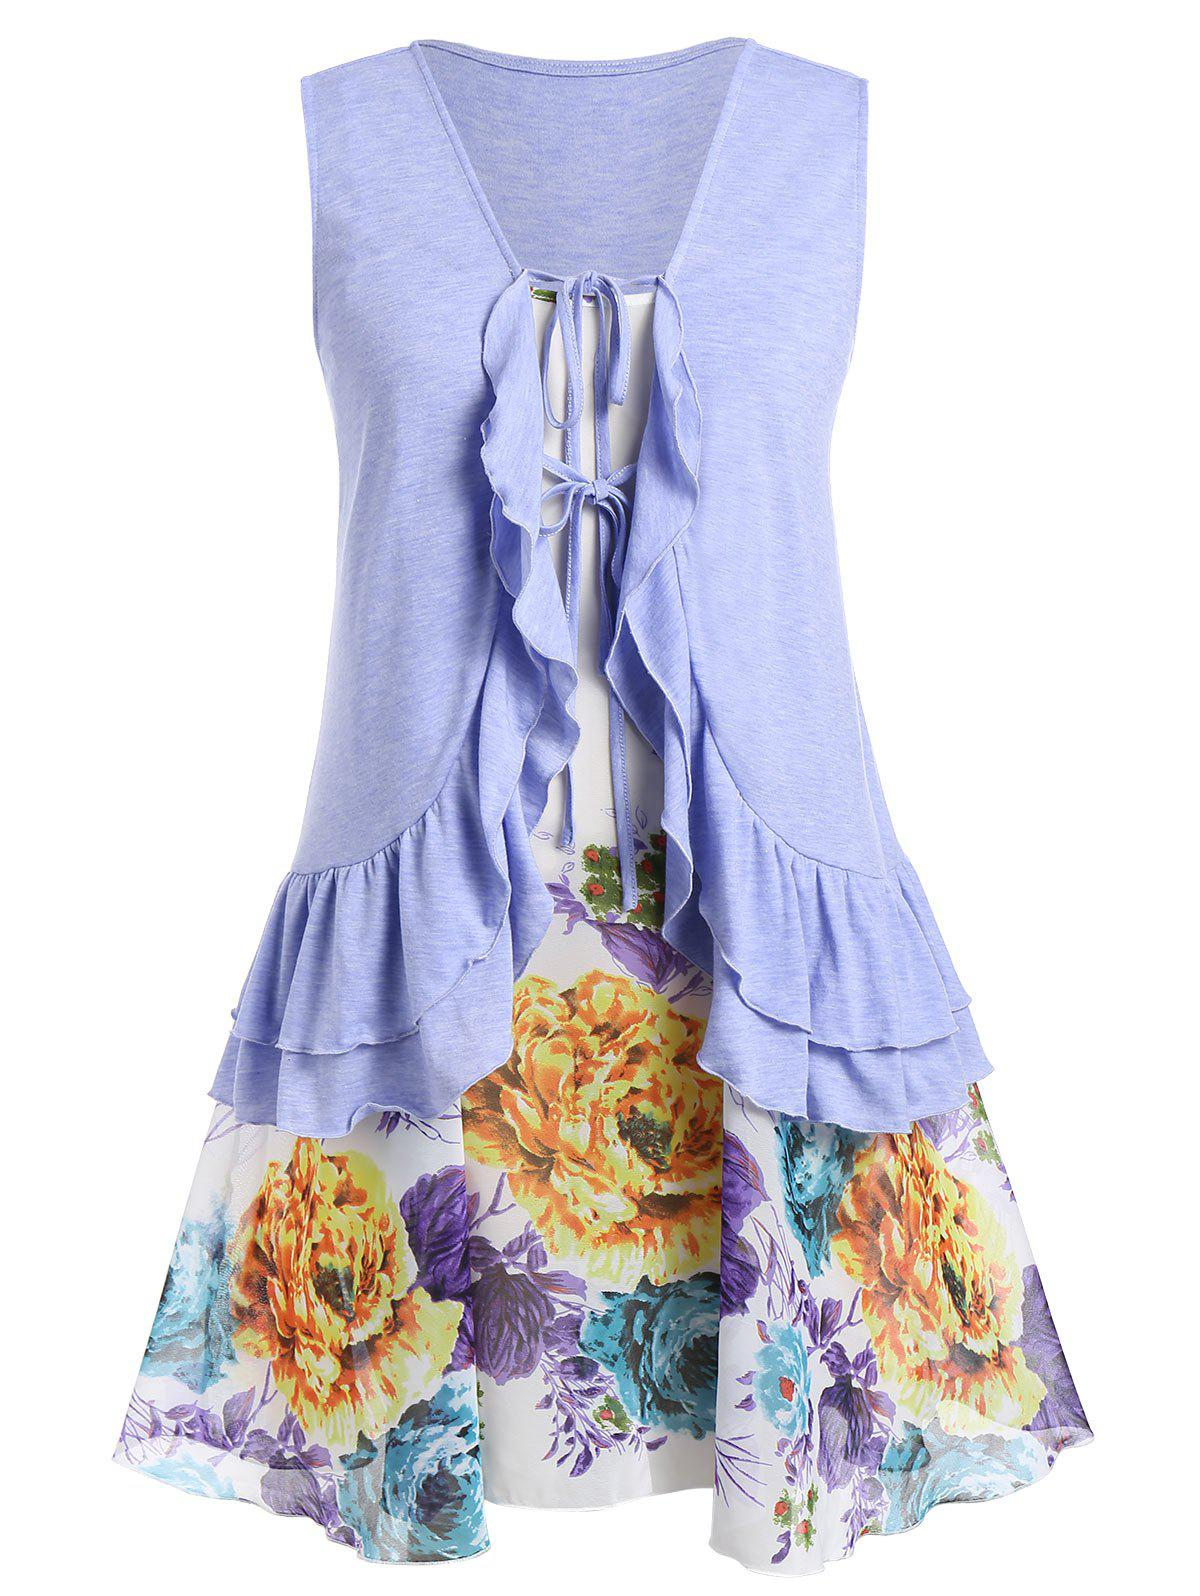 Plus Size Flounced Tank Top With Floral Print Cami - PURPLE MIMOSA 2X